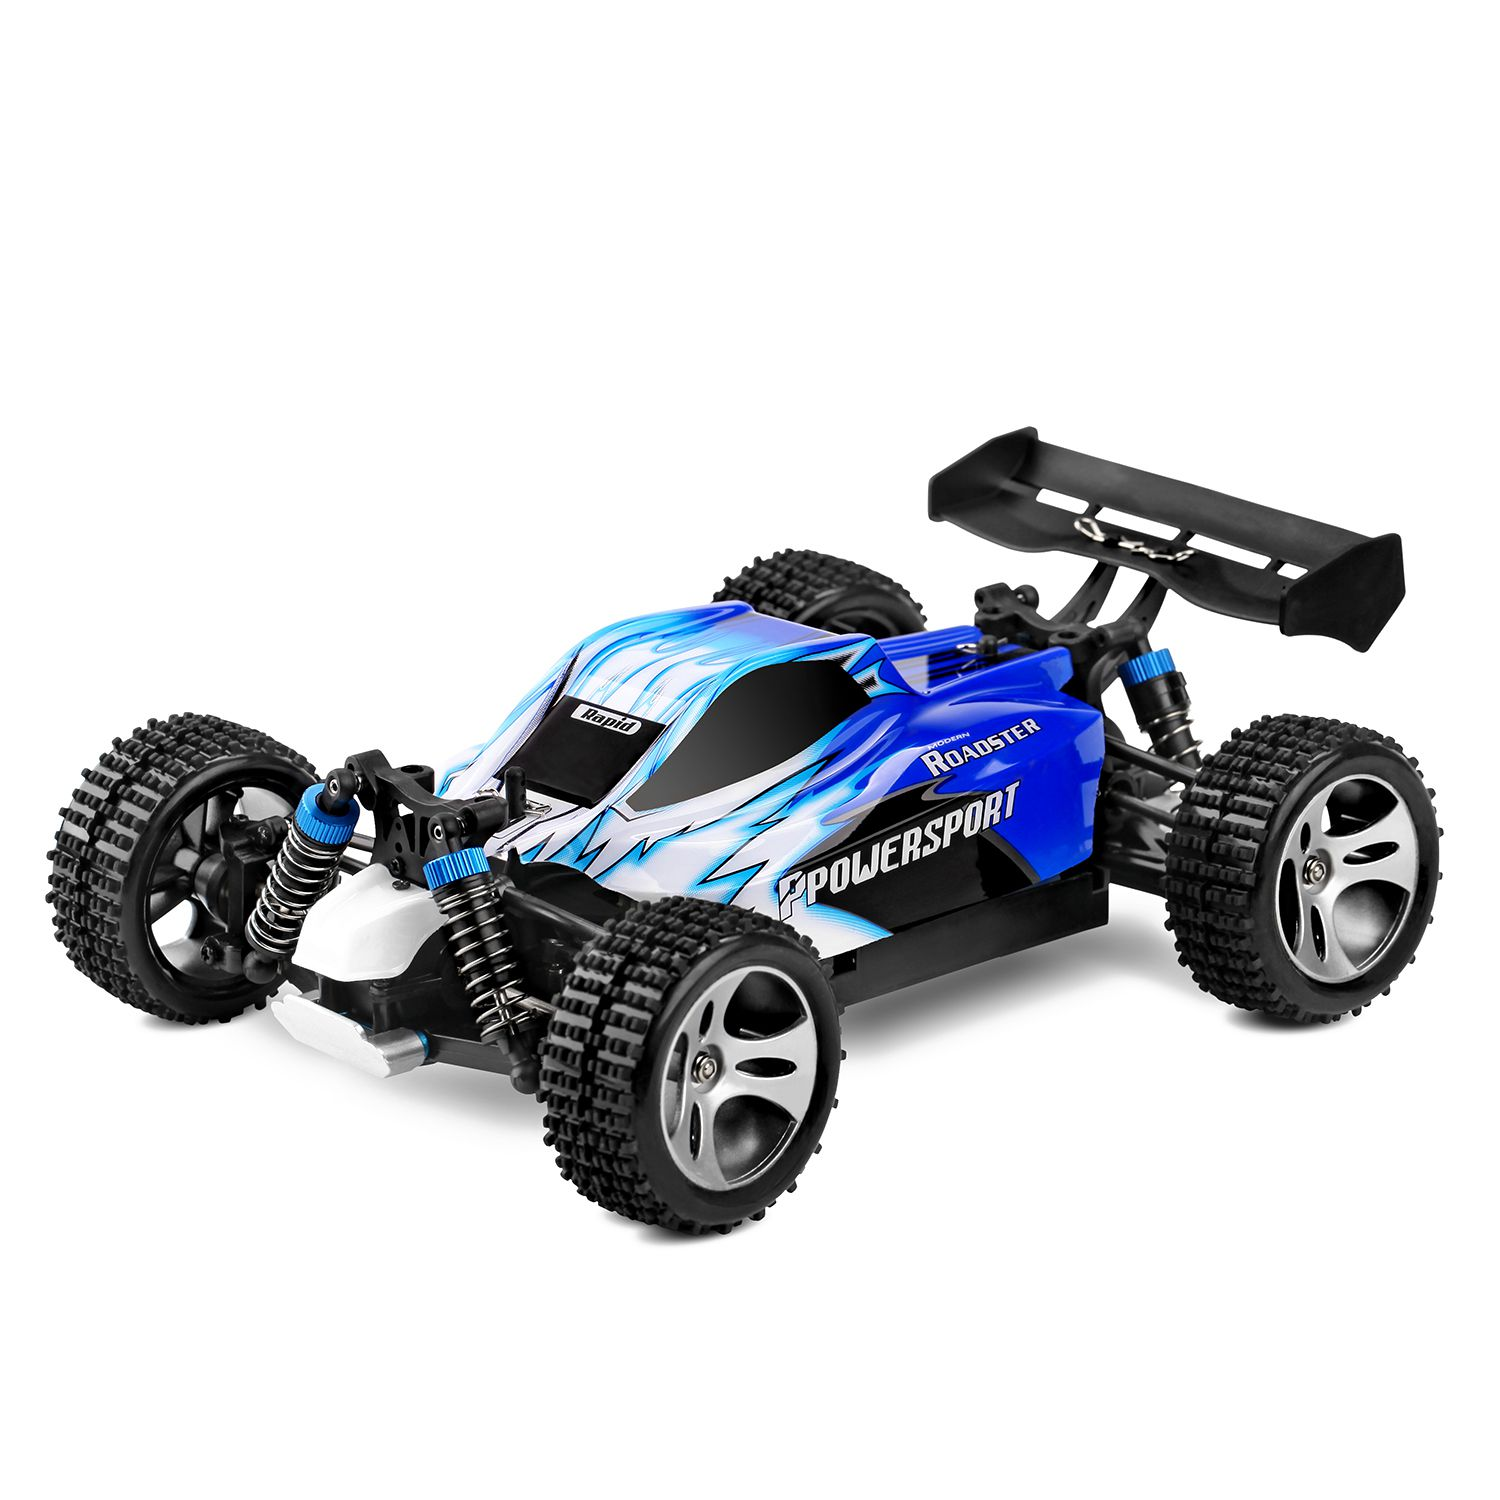 Wltoys A959 1/18 1: 18 Scale 2.4G 4WD RTR Off-Road Buggy RC Car for Gift Toys, EU Plug hongnor ofna x3e rtr 1 8 scale rc dune buggy cars electric off road w tenshock motor free shipping